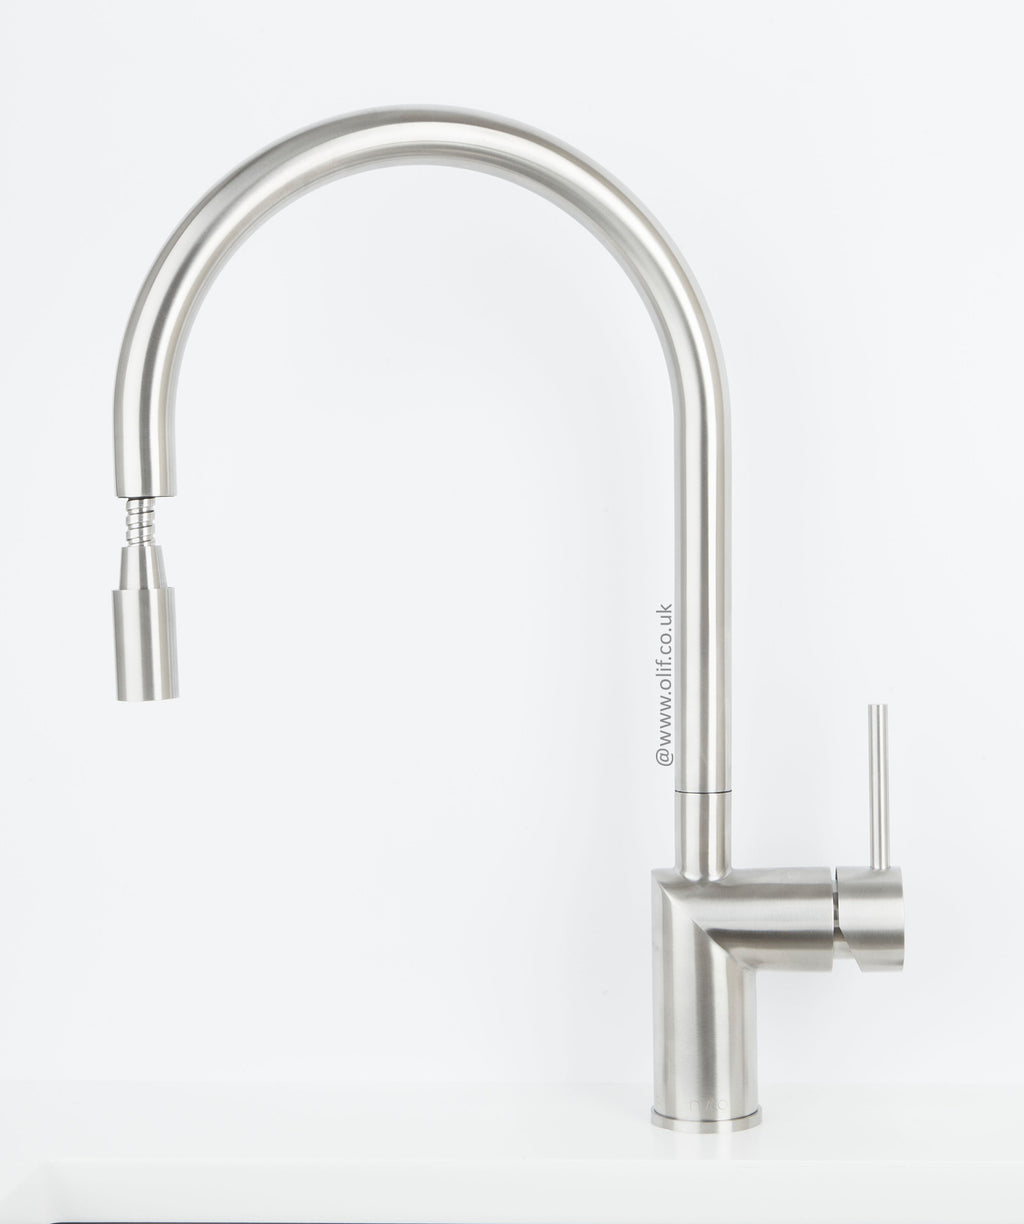 Nivito RH-100-EX Brushed Steel, pull-out kitchen mixer tap